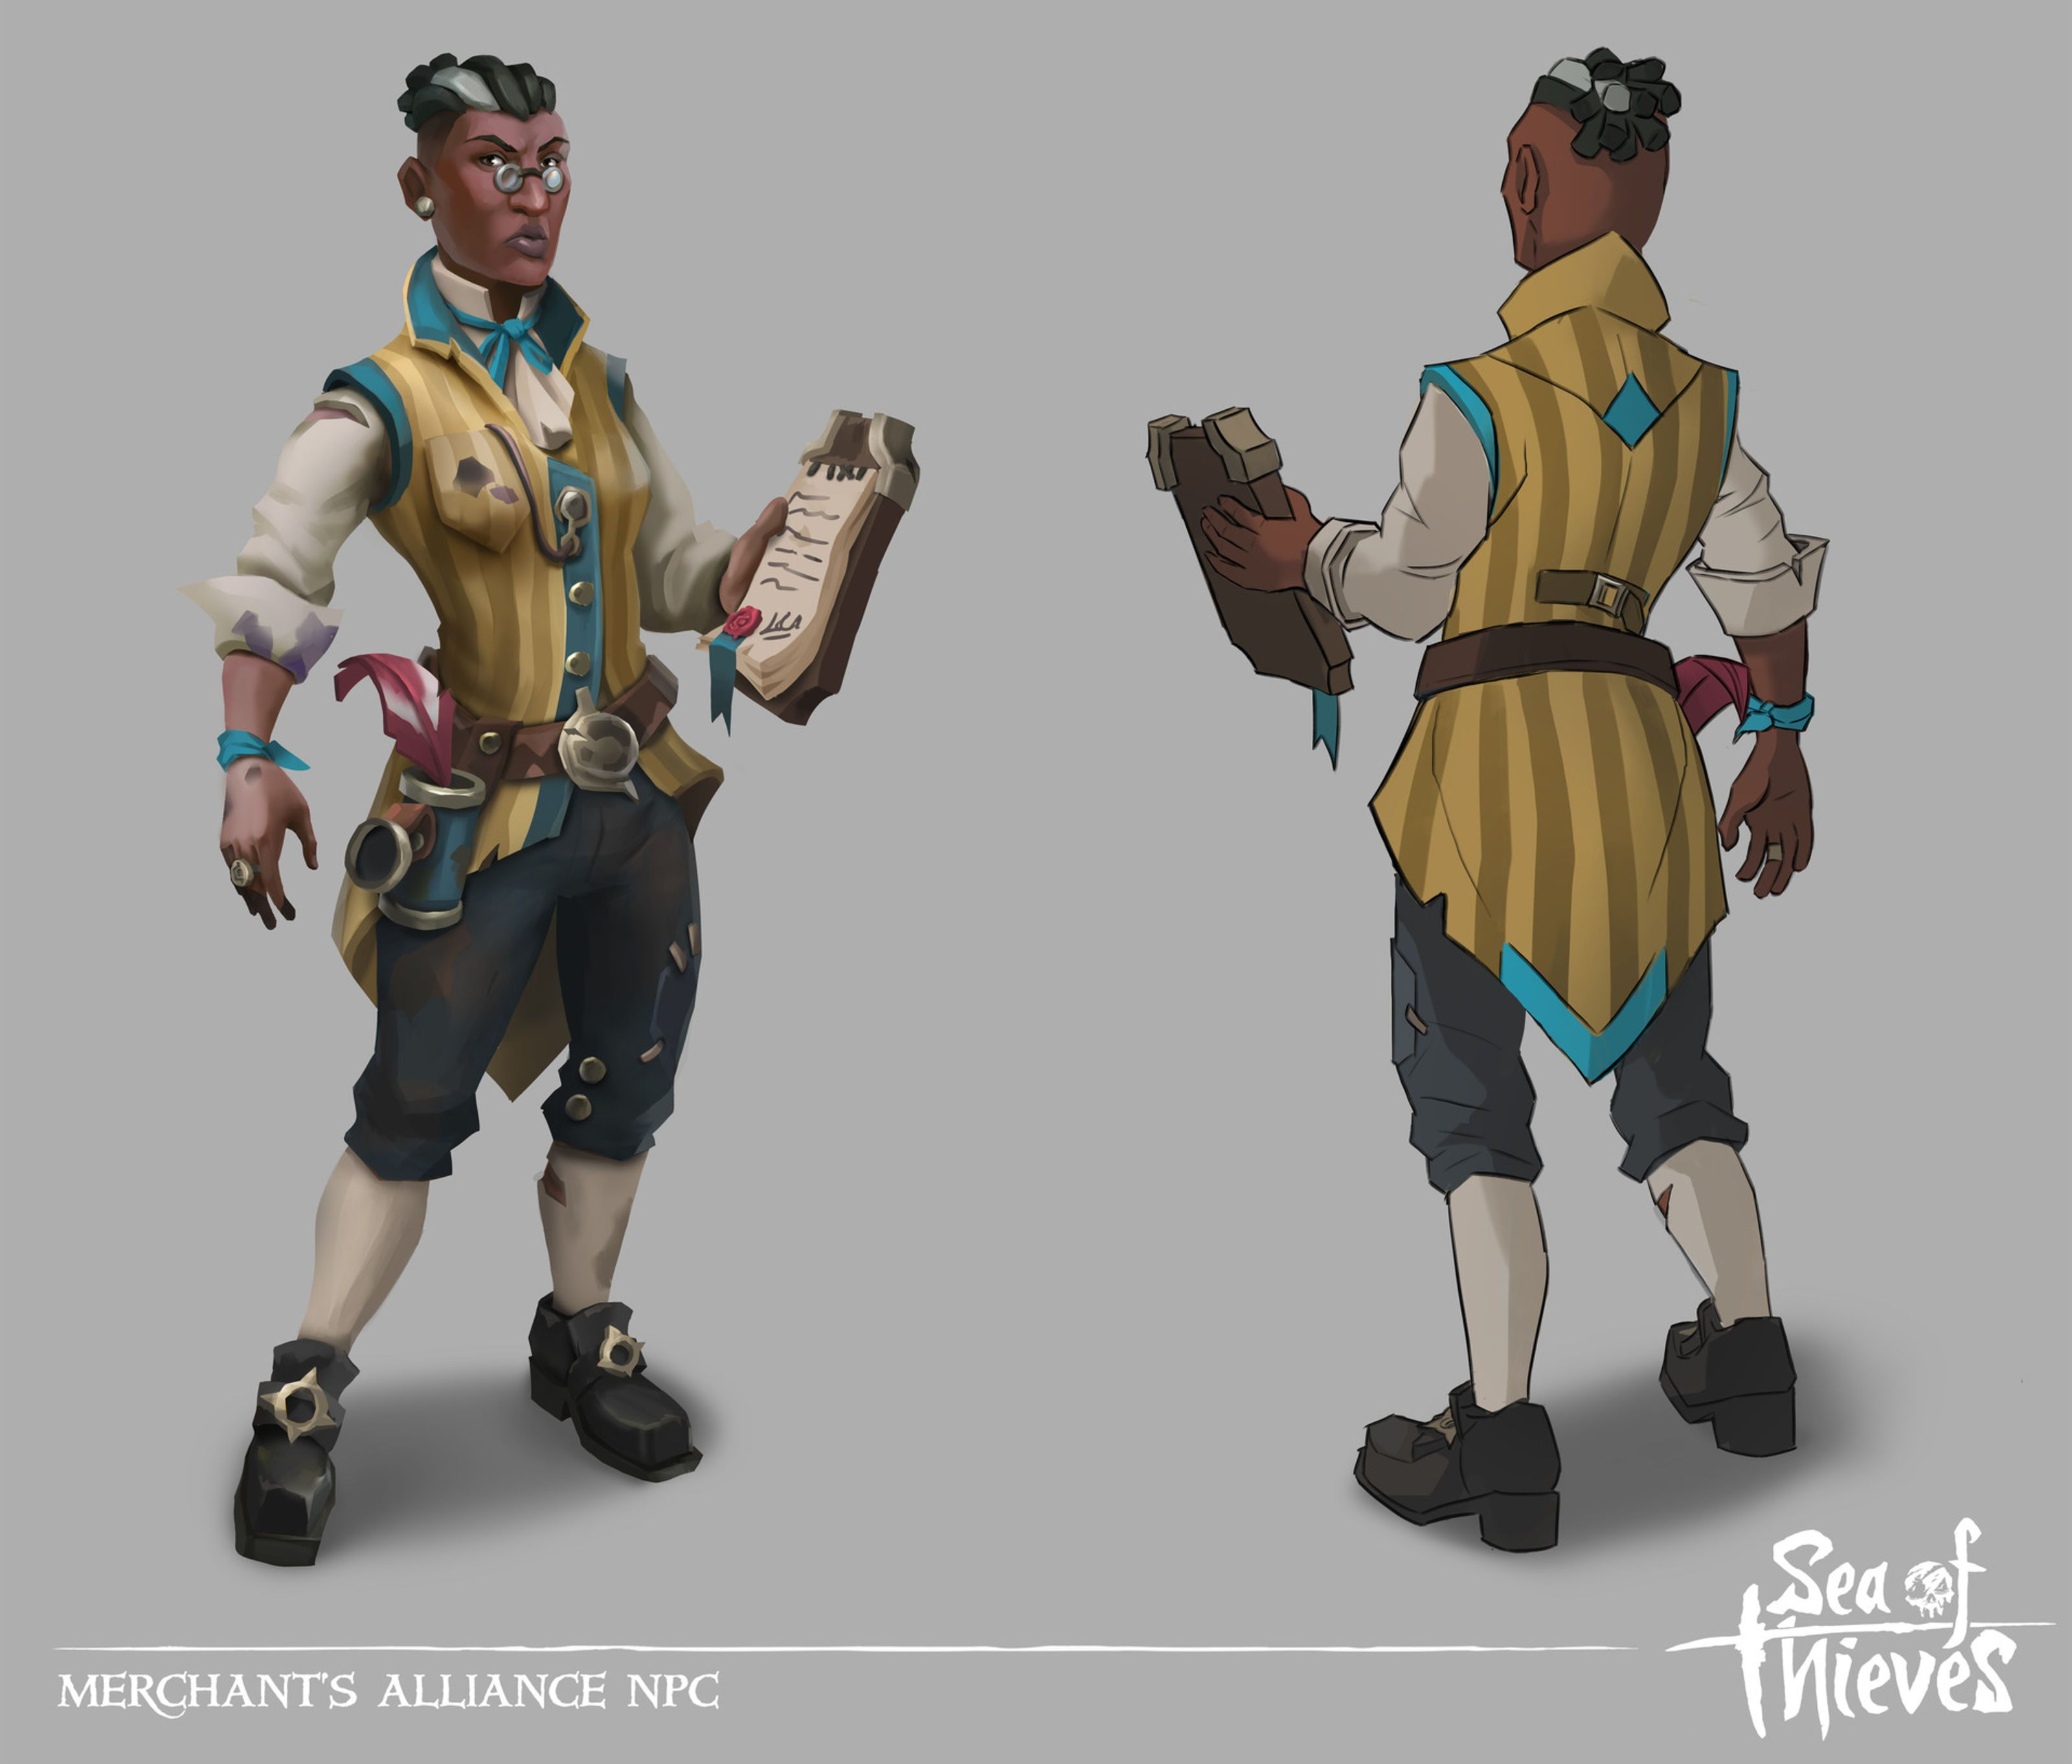 Pin By Trovan 23 On Sea Of Thieves In 2020 Sea Of Thieves Art Sea